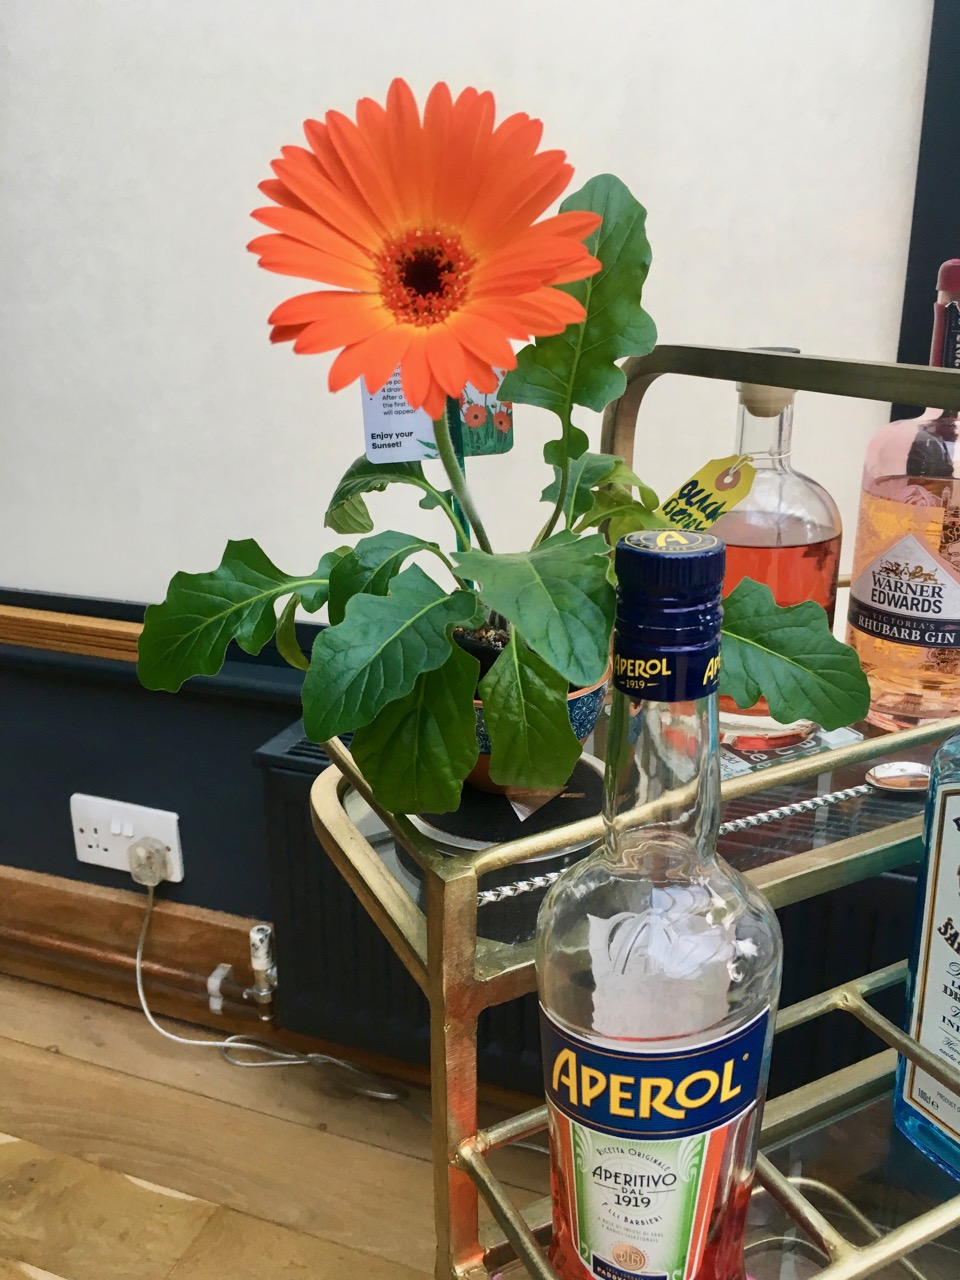 Aperol and a gerbera to match